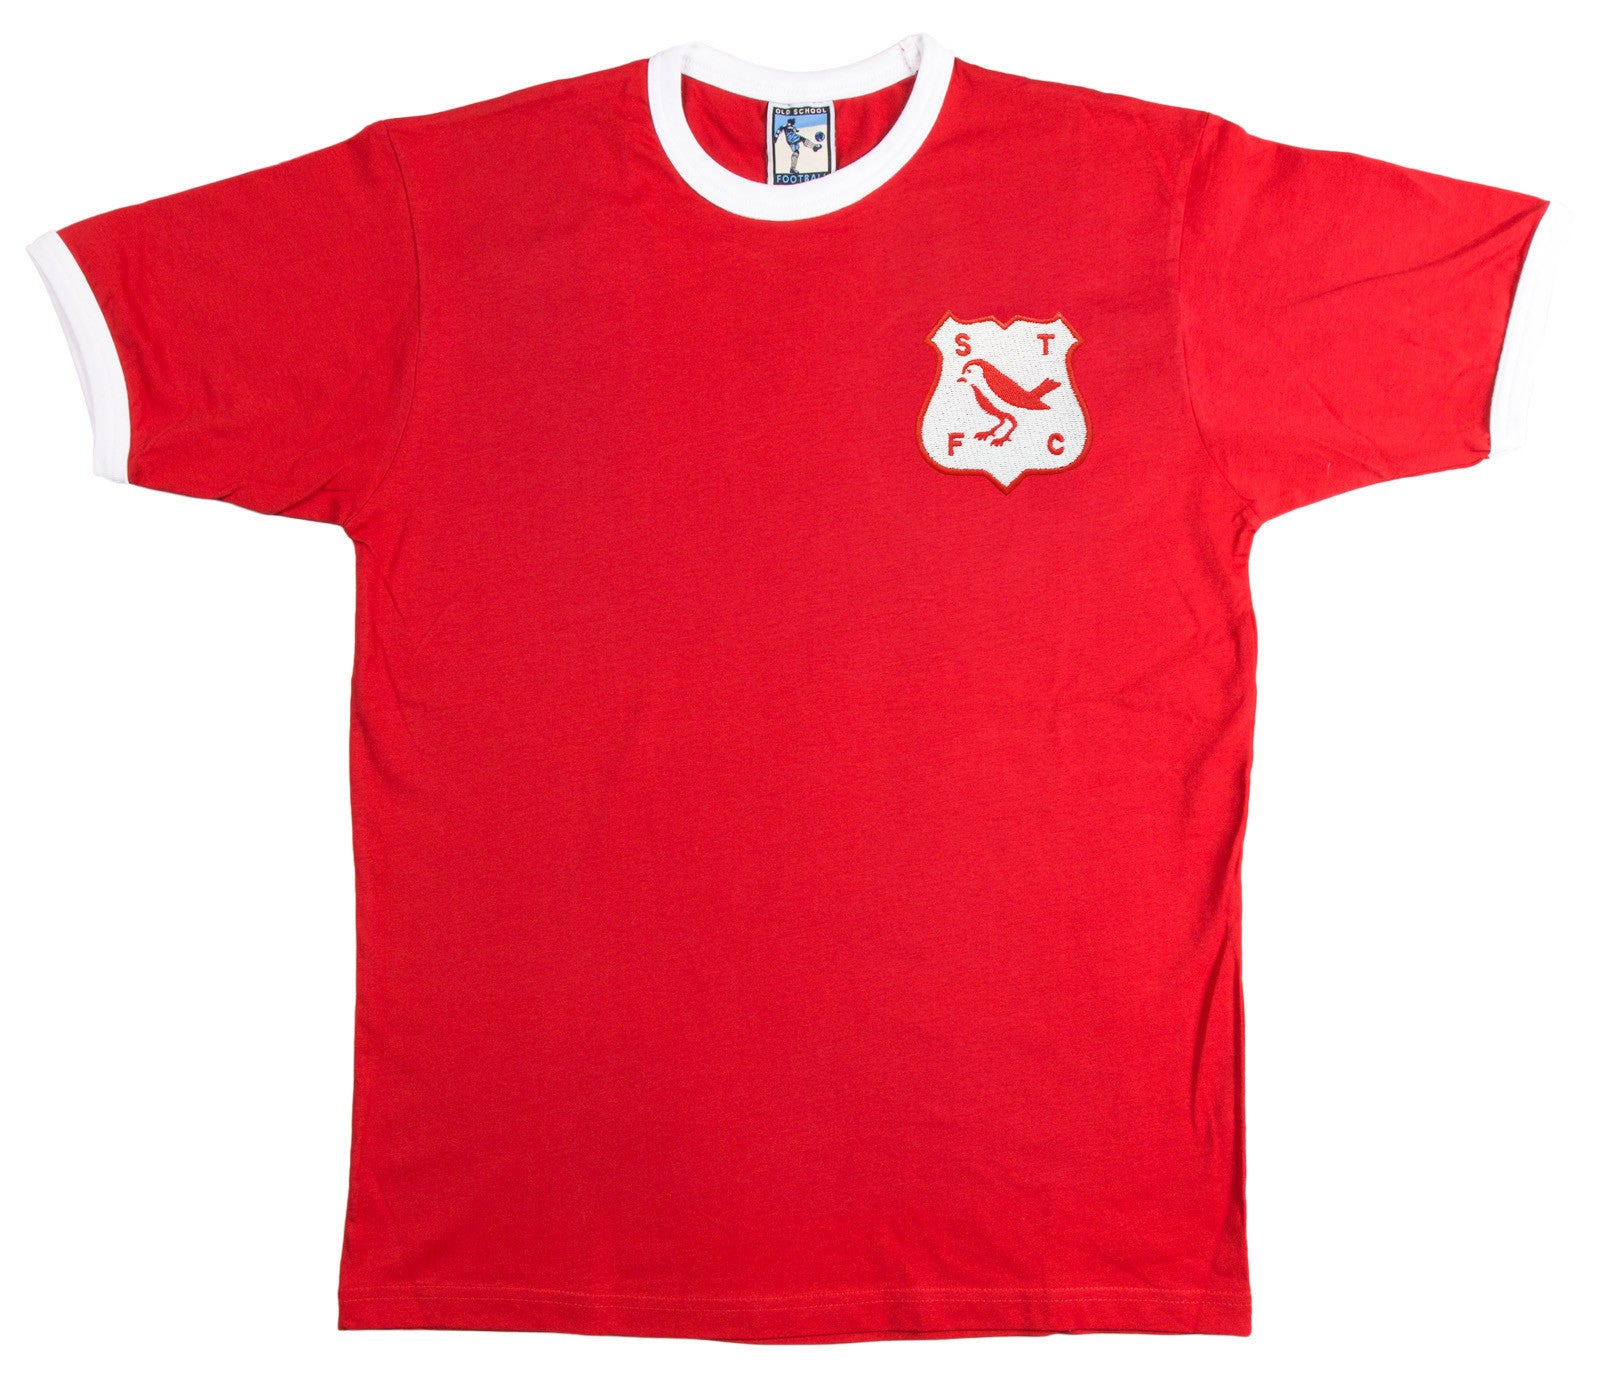 Swindon Town Retro Football T Shirt 1960s - T-shirt